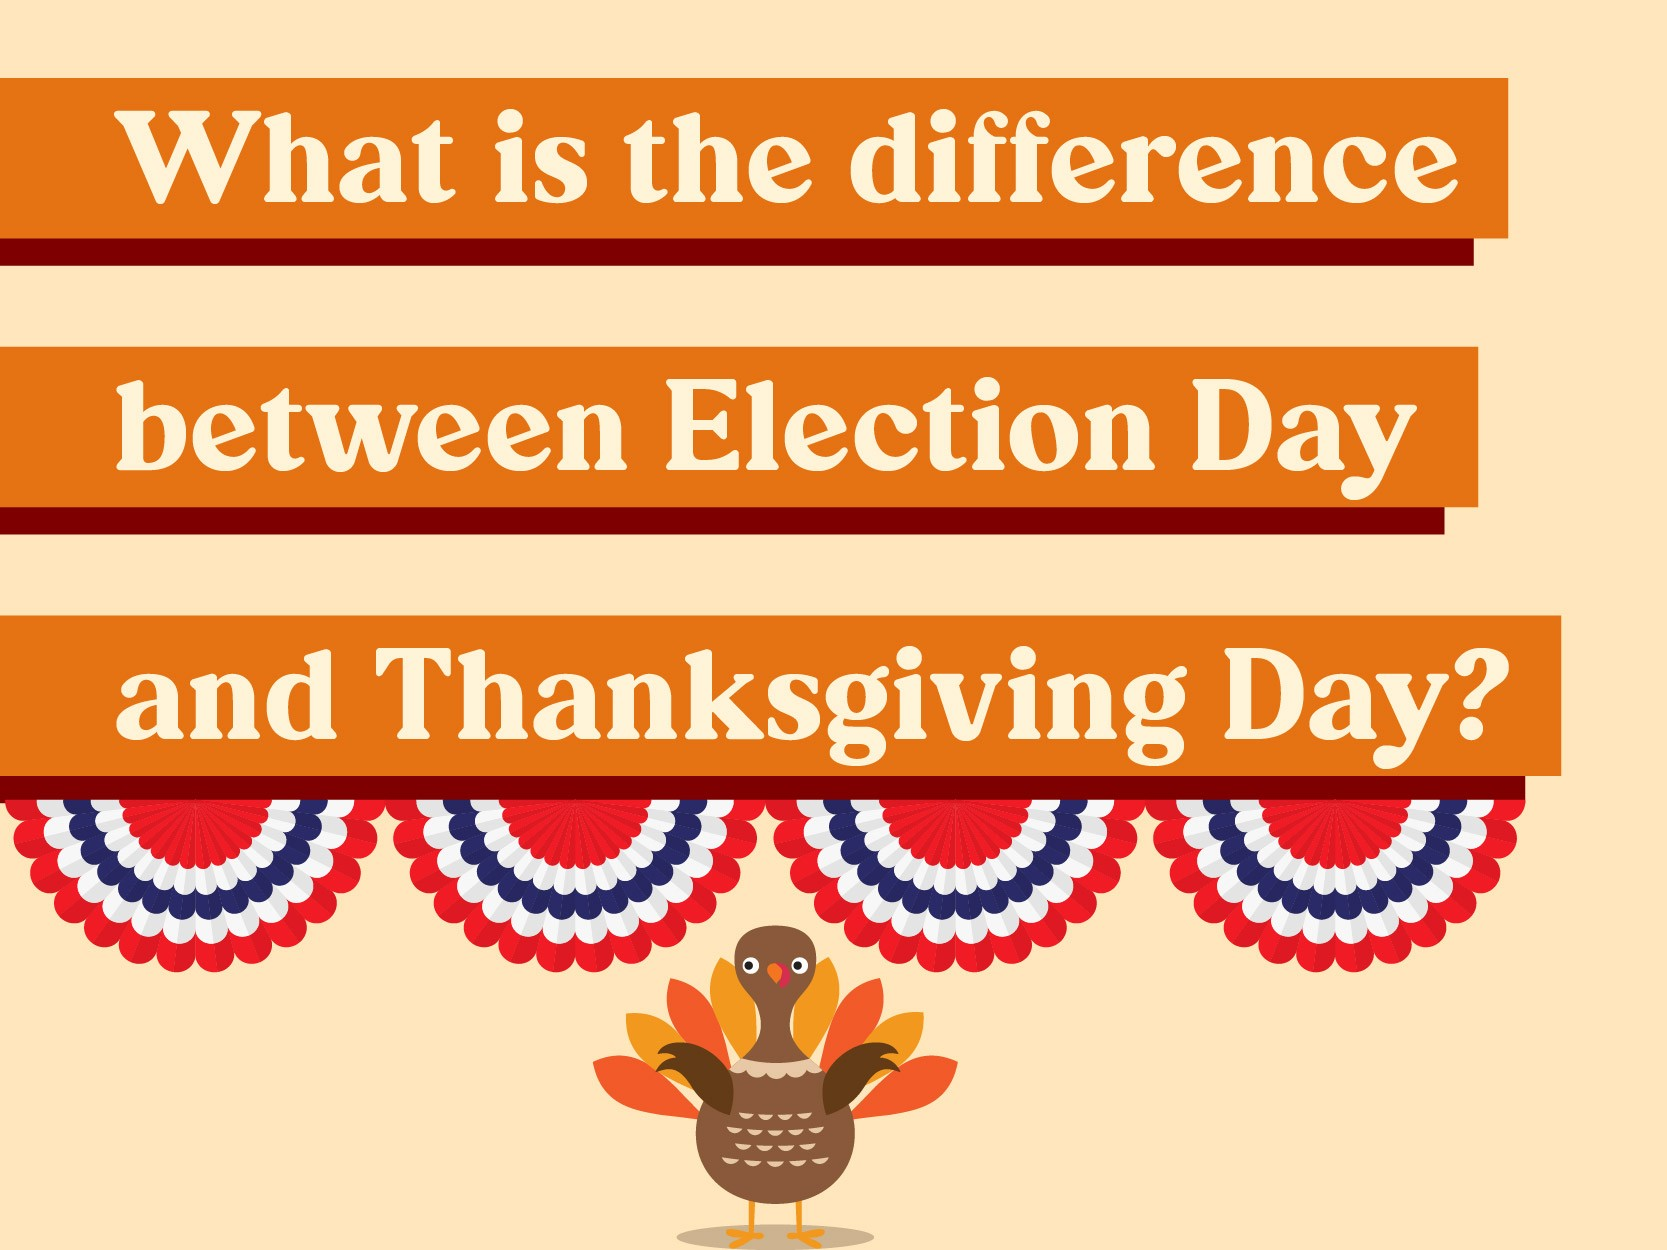 What is the difference between Election Day and Thanksgiving Day?